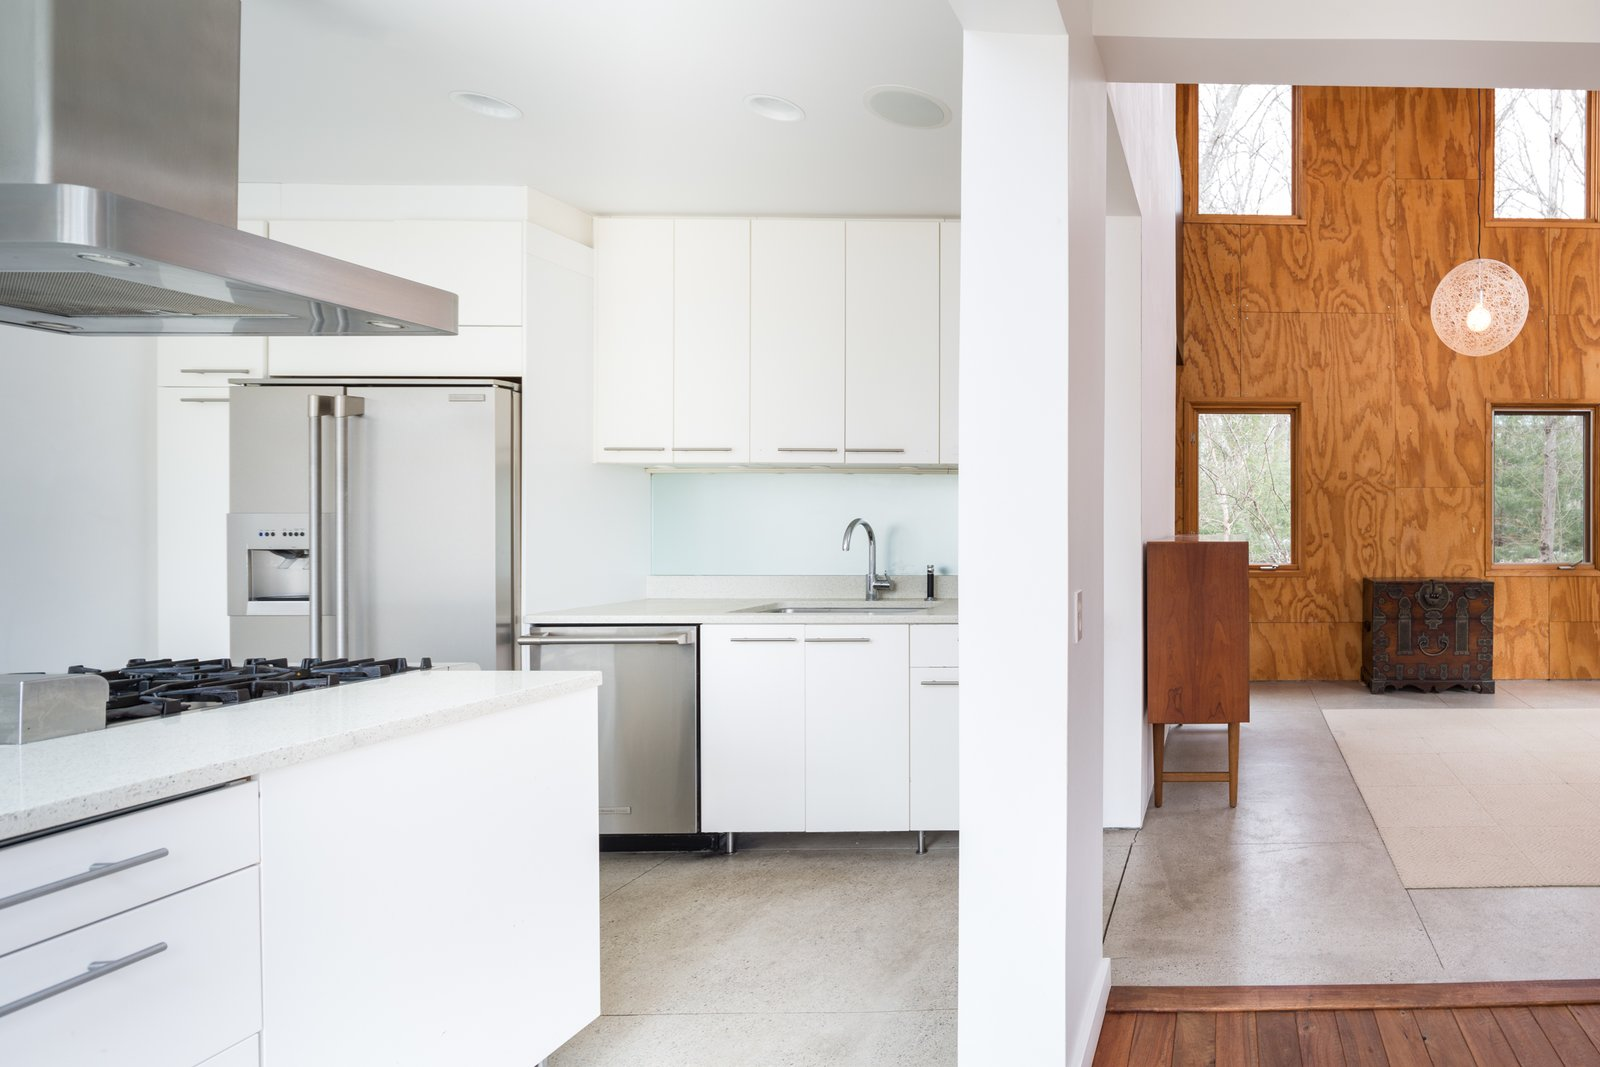 The double-height living area features unfinished plywood cladding. The sleek, contemporary kitchen features a center island, as well as stainless steel appliances.